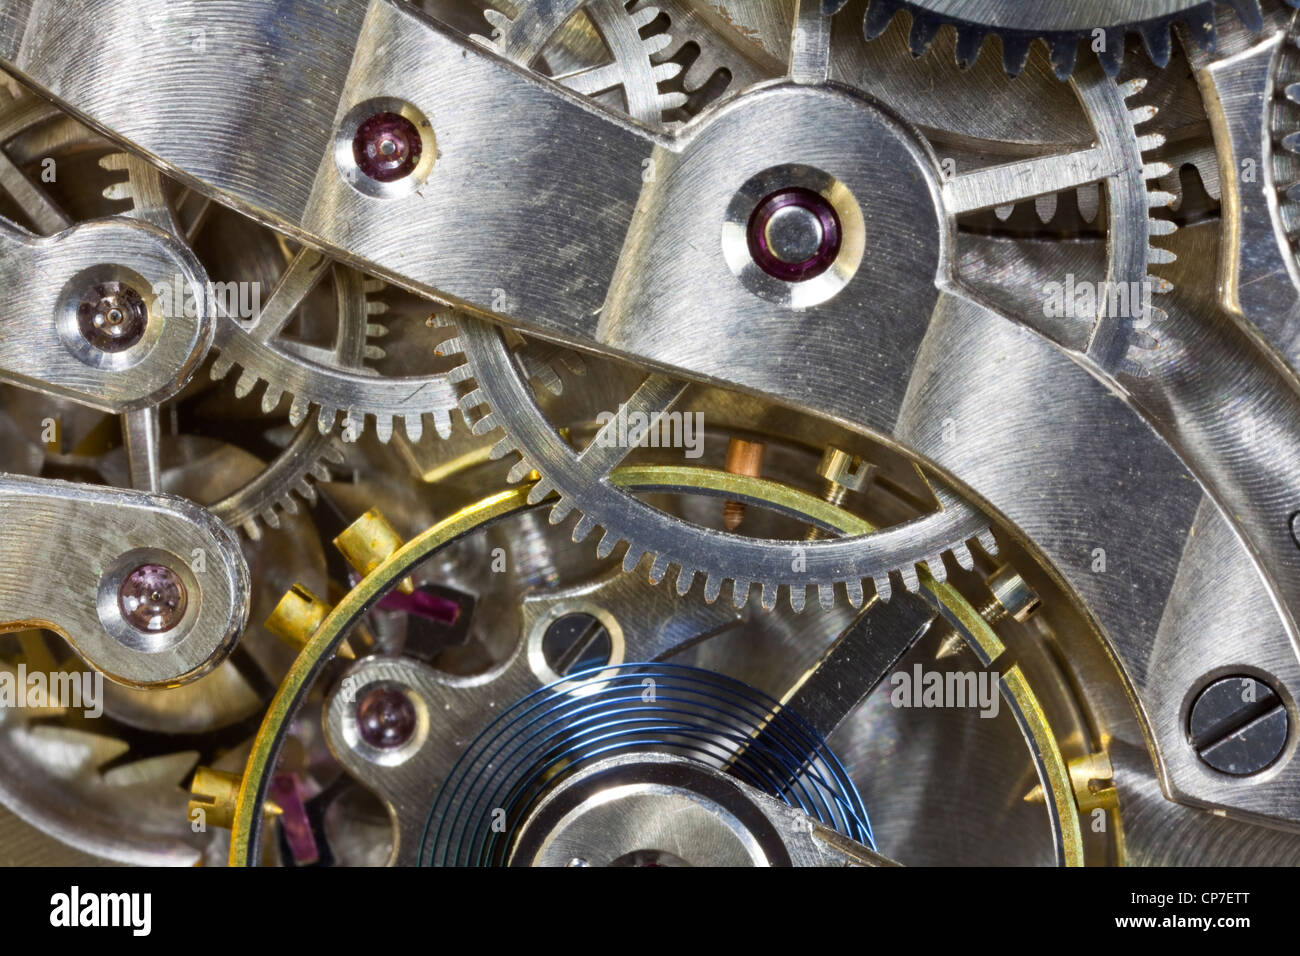 Antique pocket watch inside gears macro detail. - Stock Image